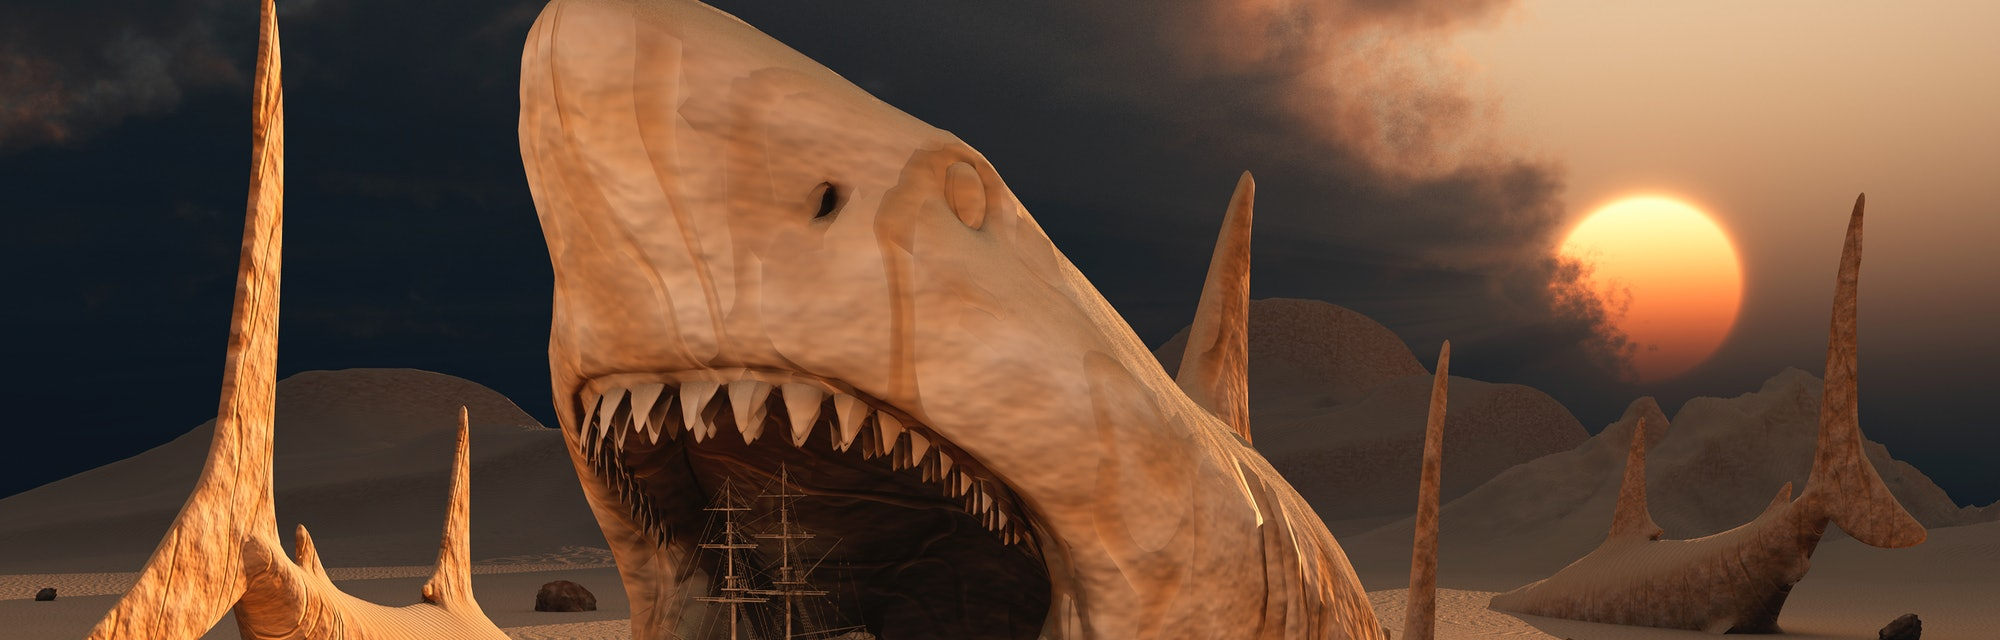 Megalodon desert is a 3D surreal concept image featuring the largest sharks that lived on Earth during the Cenozoic period of time.